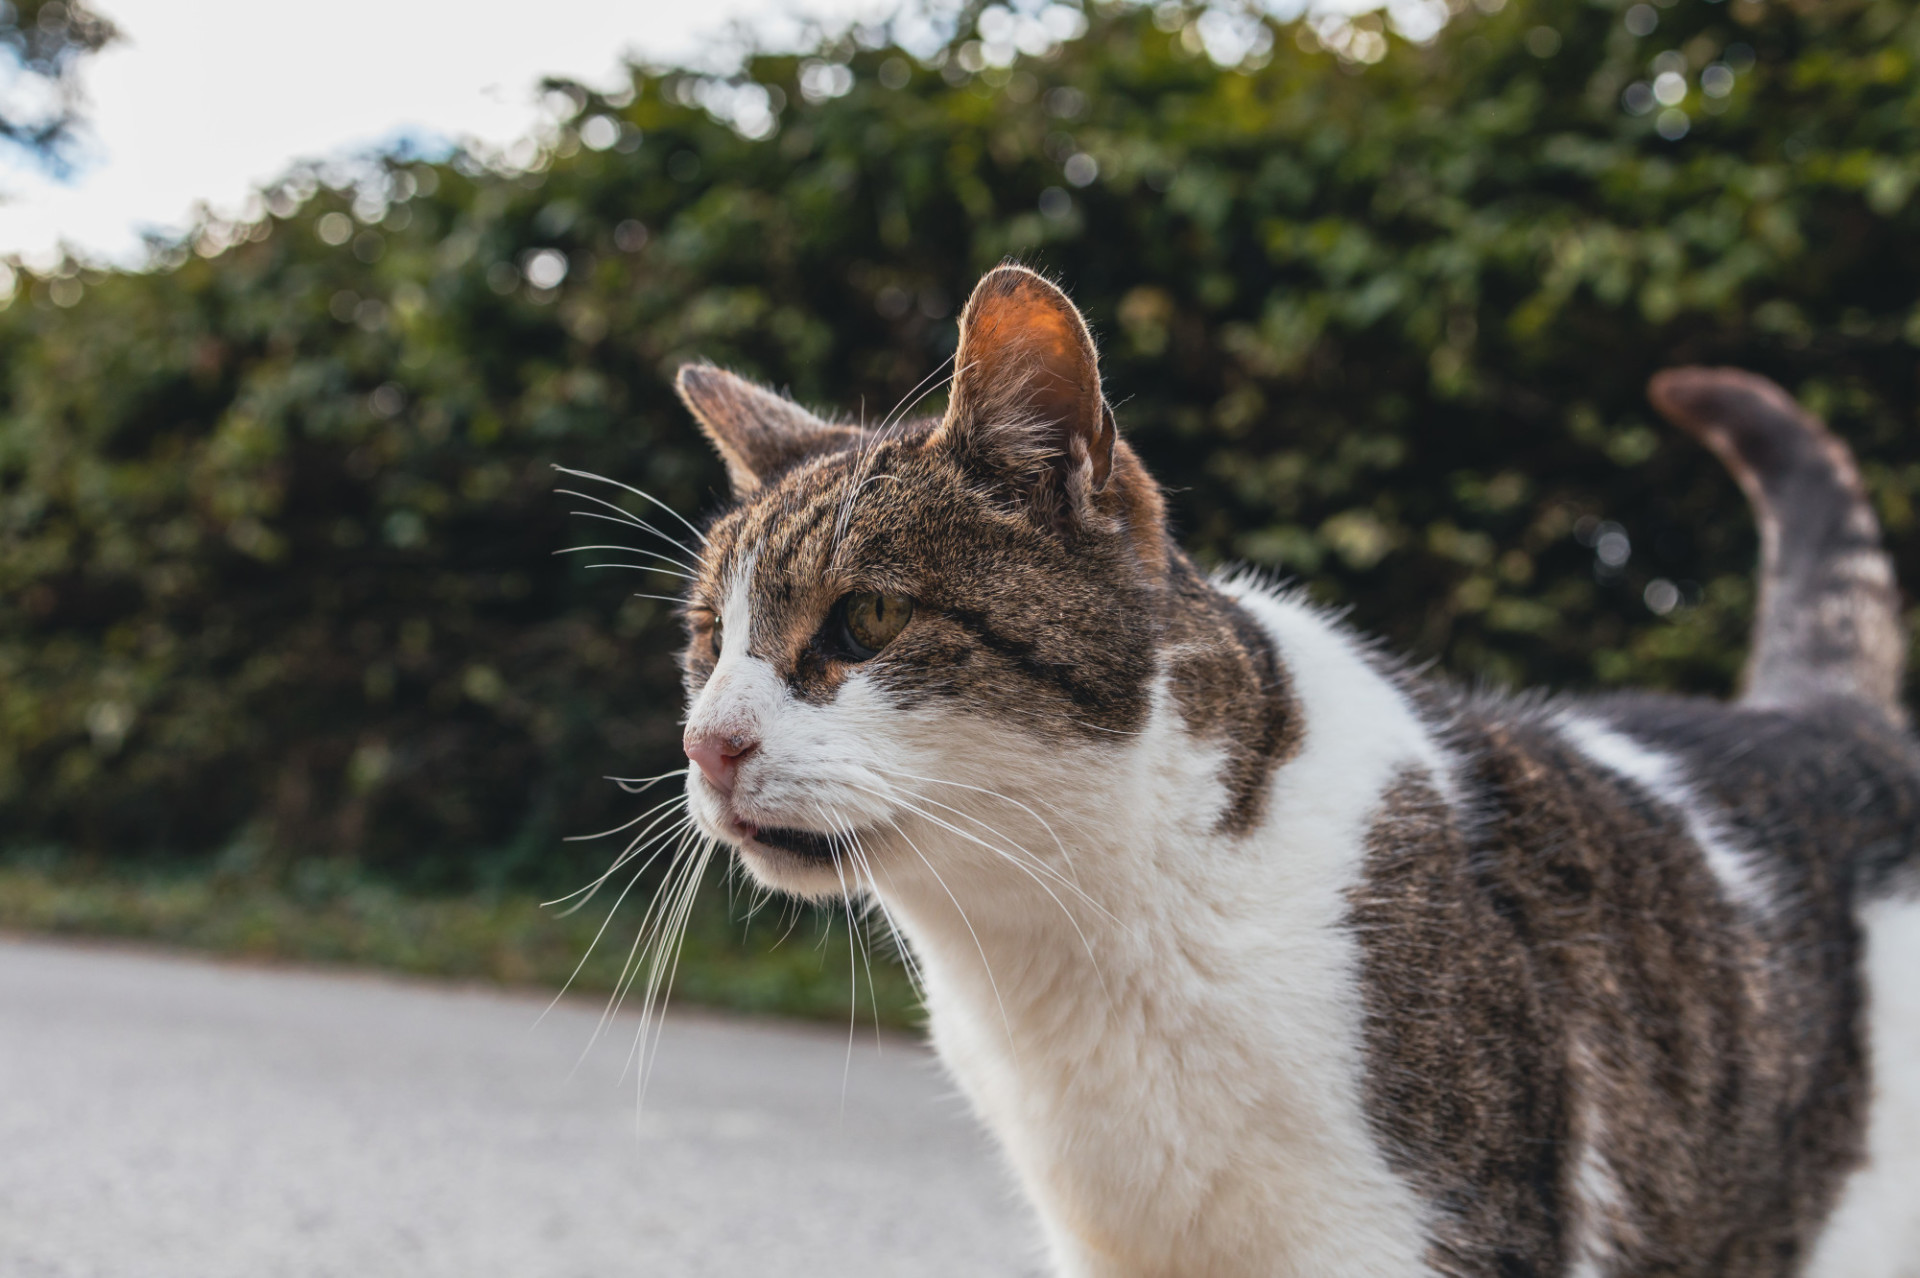 Encounter with a cat on the street